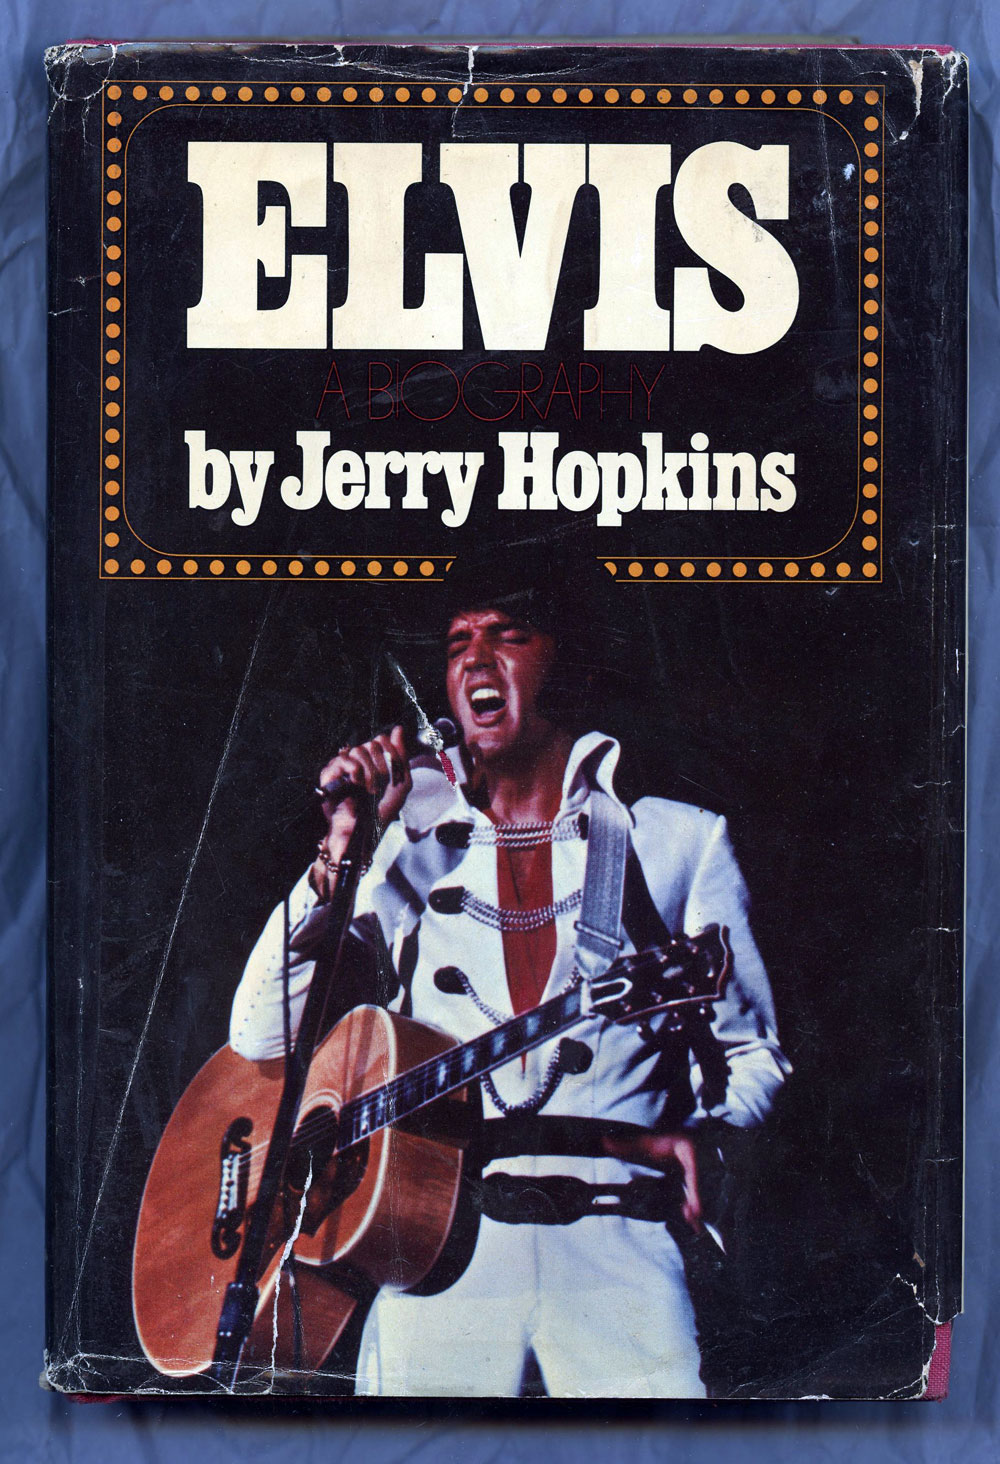 Elvis Presley Book A Biography Hard Cover First Edition 1971 Jerry Hopkins